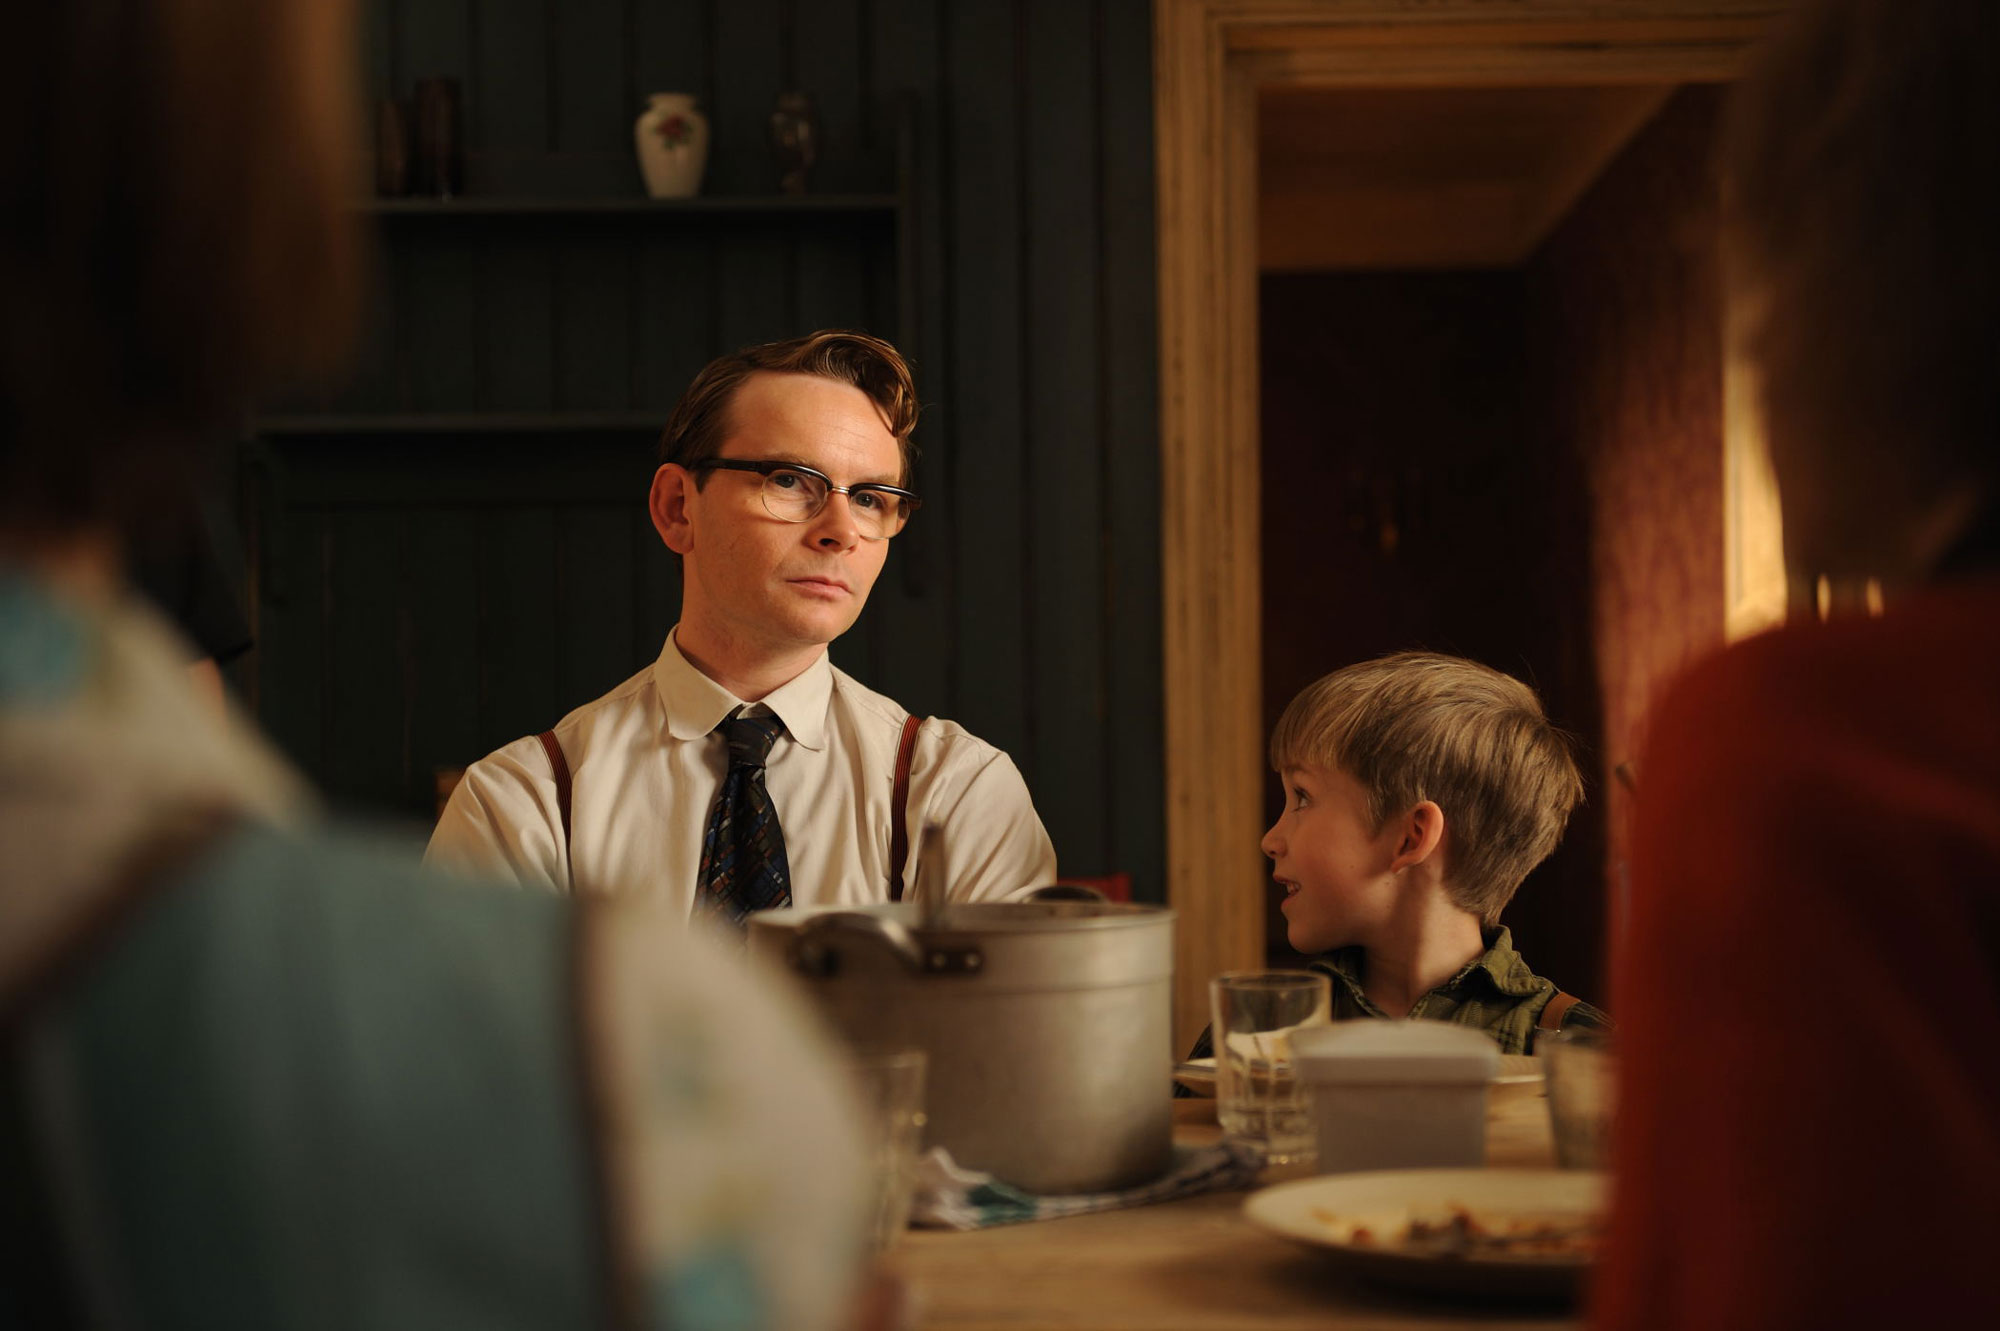 Jana Gunnar Røise and Adrian Grønrønevik Smith in the kitchen. Stills from the childrens feature film Knerten/Twigson.